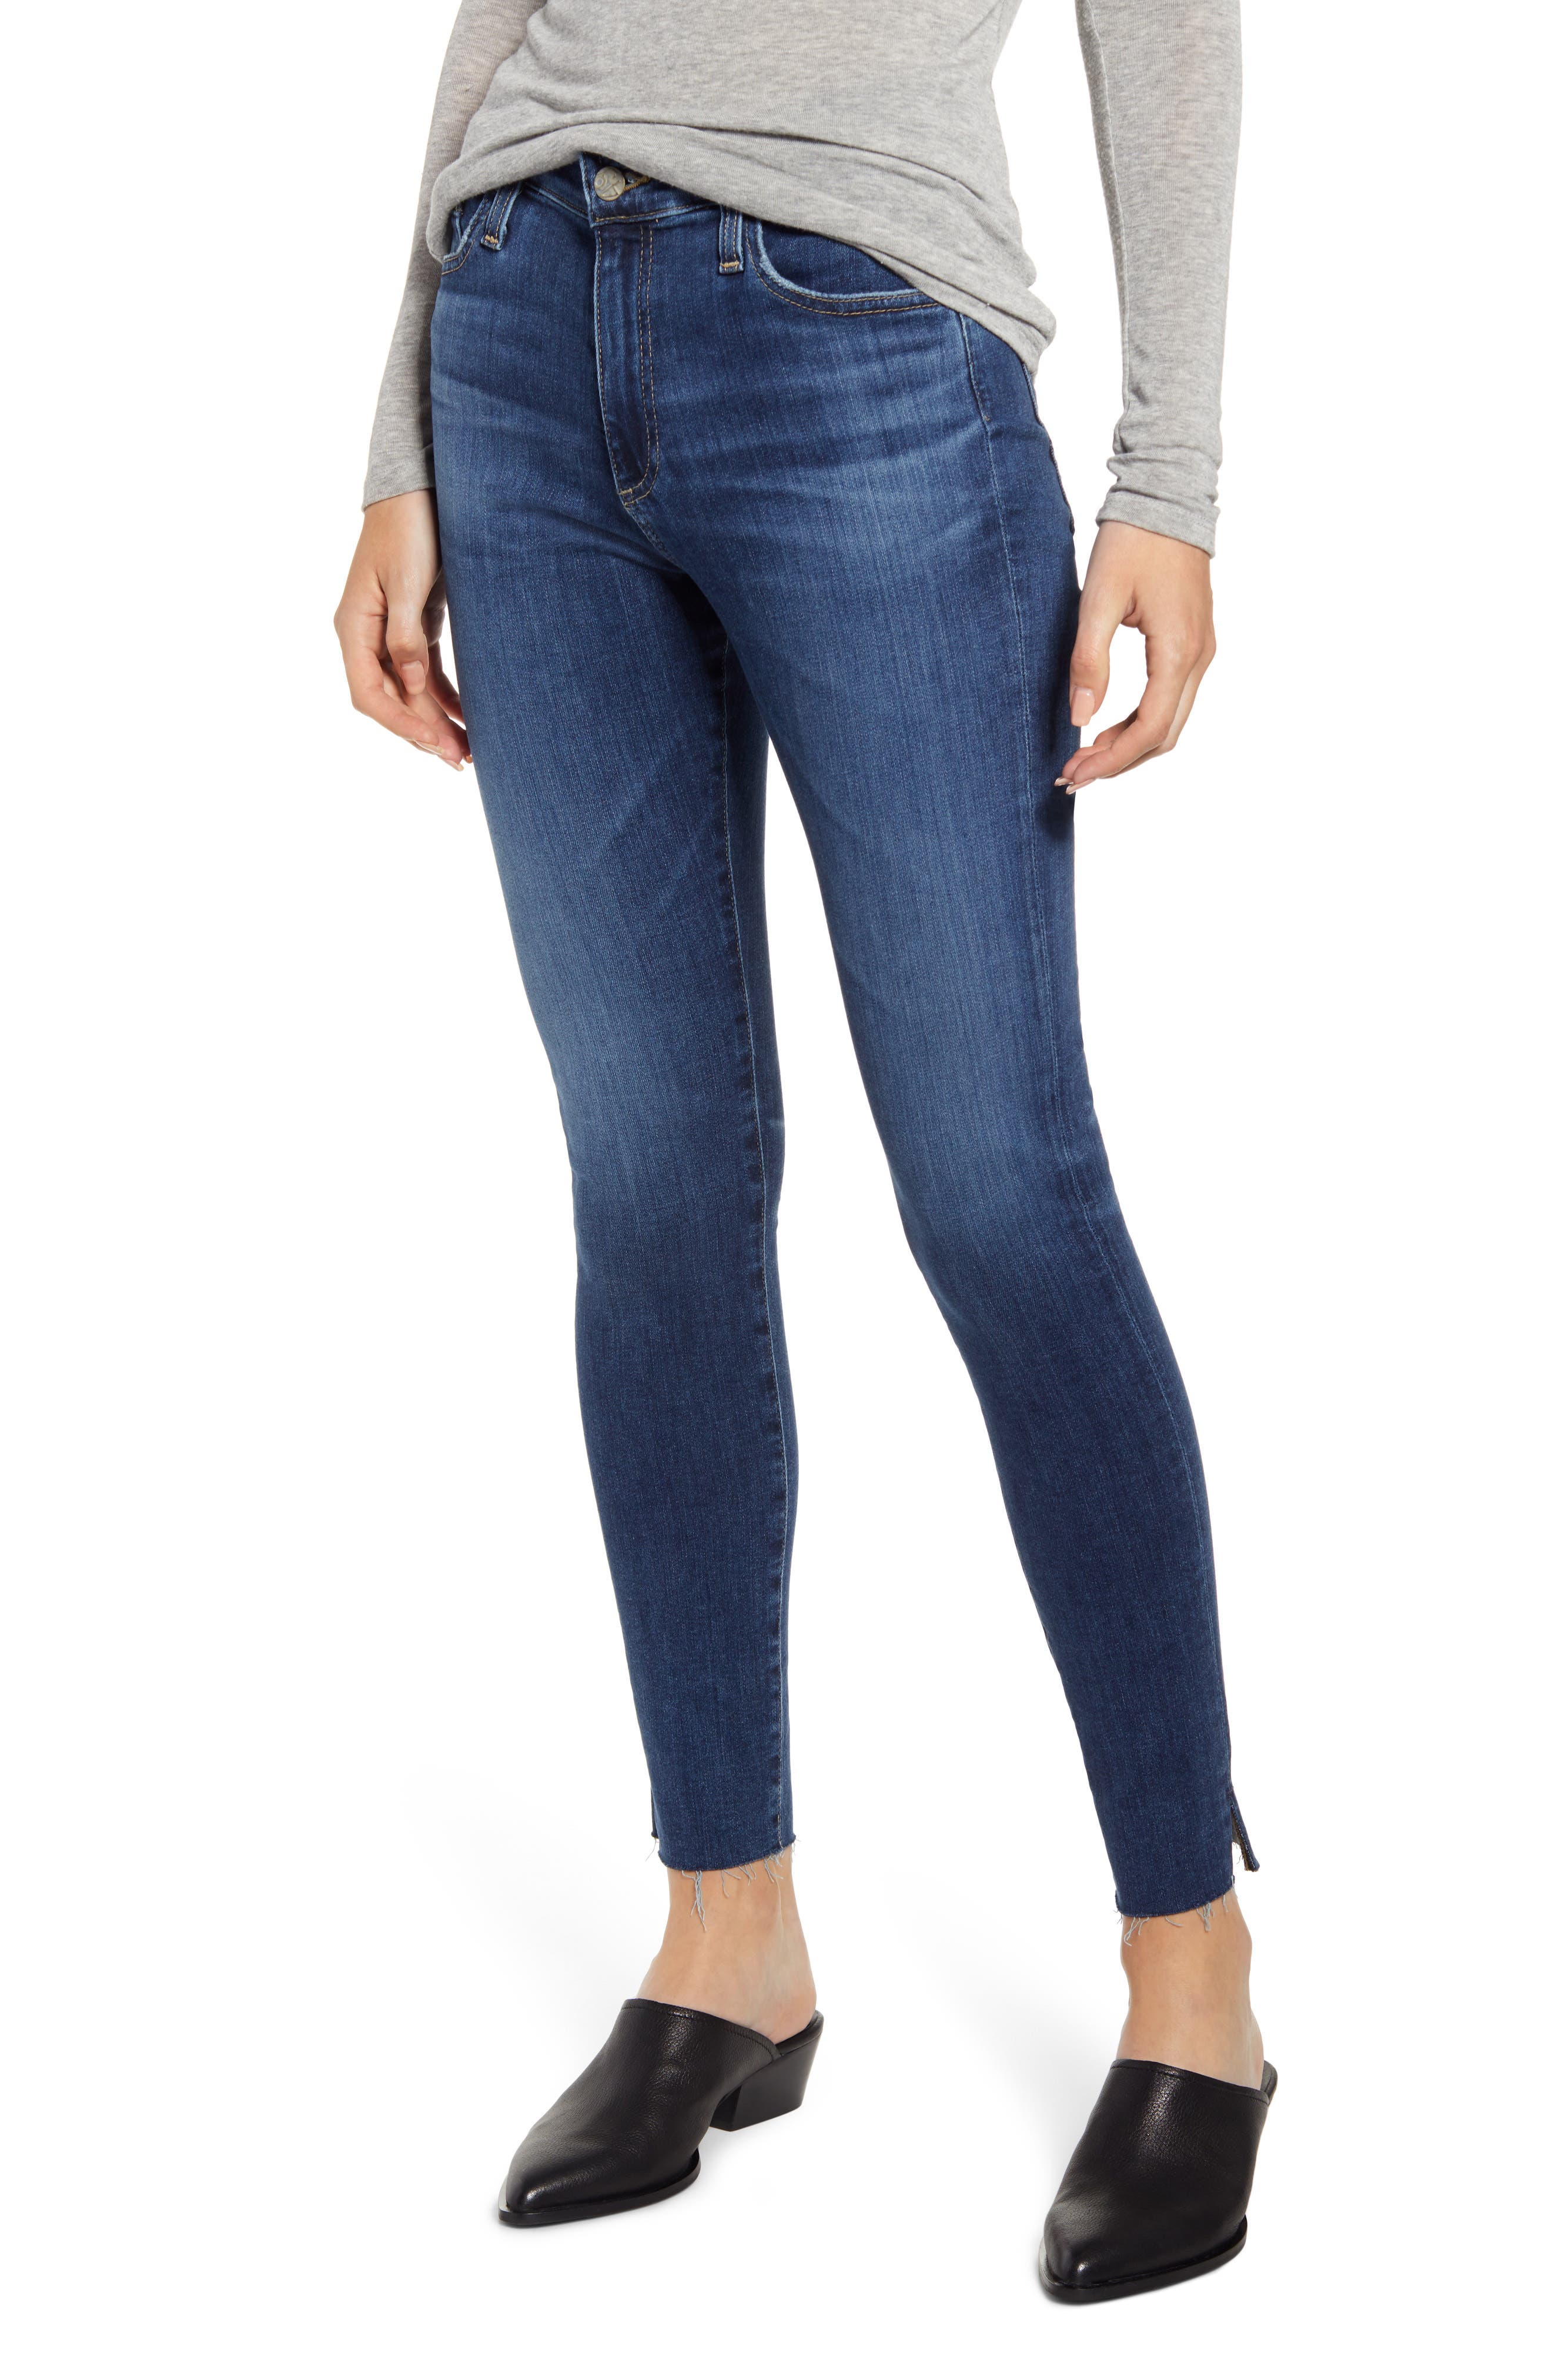 AG The Farrah High Waist Ankle Skinny Jeans (11 Years Blue Bound)